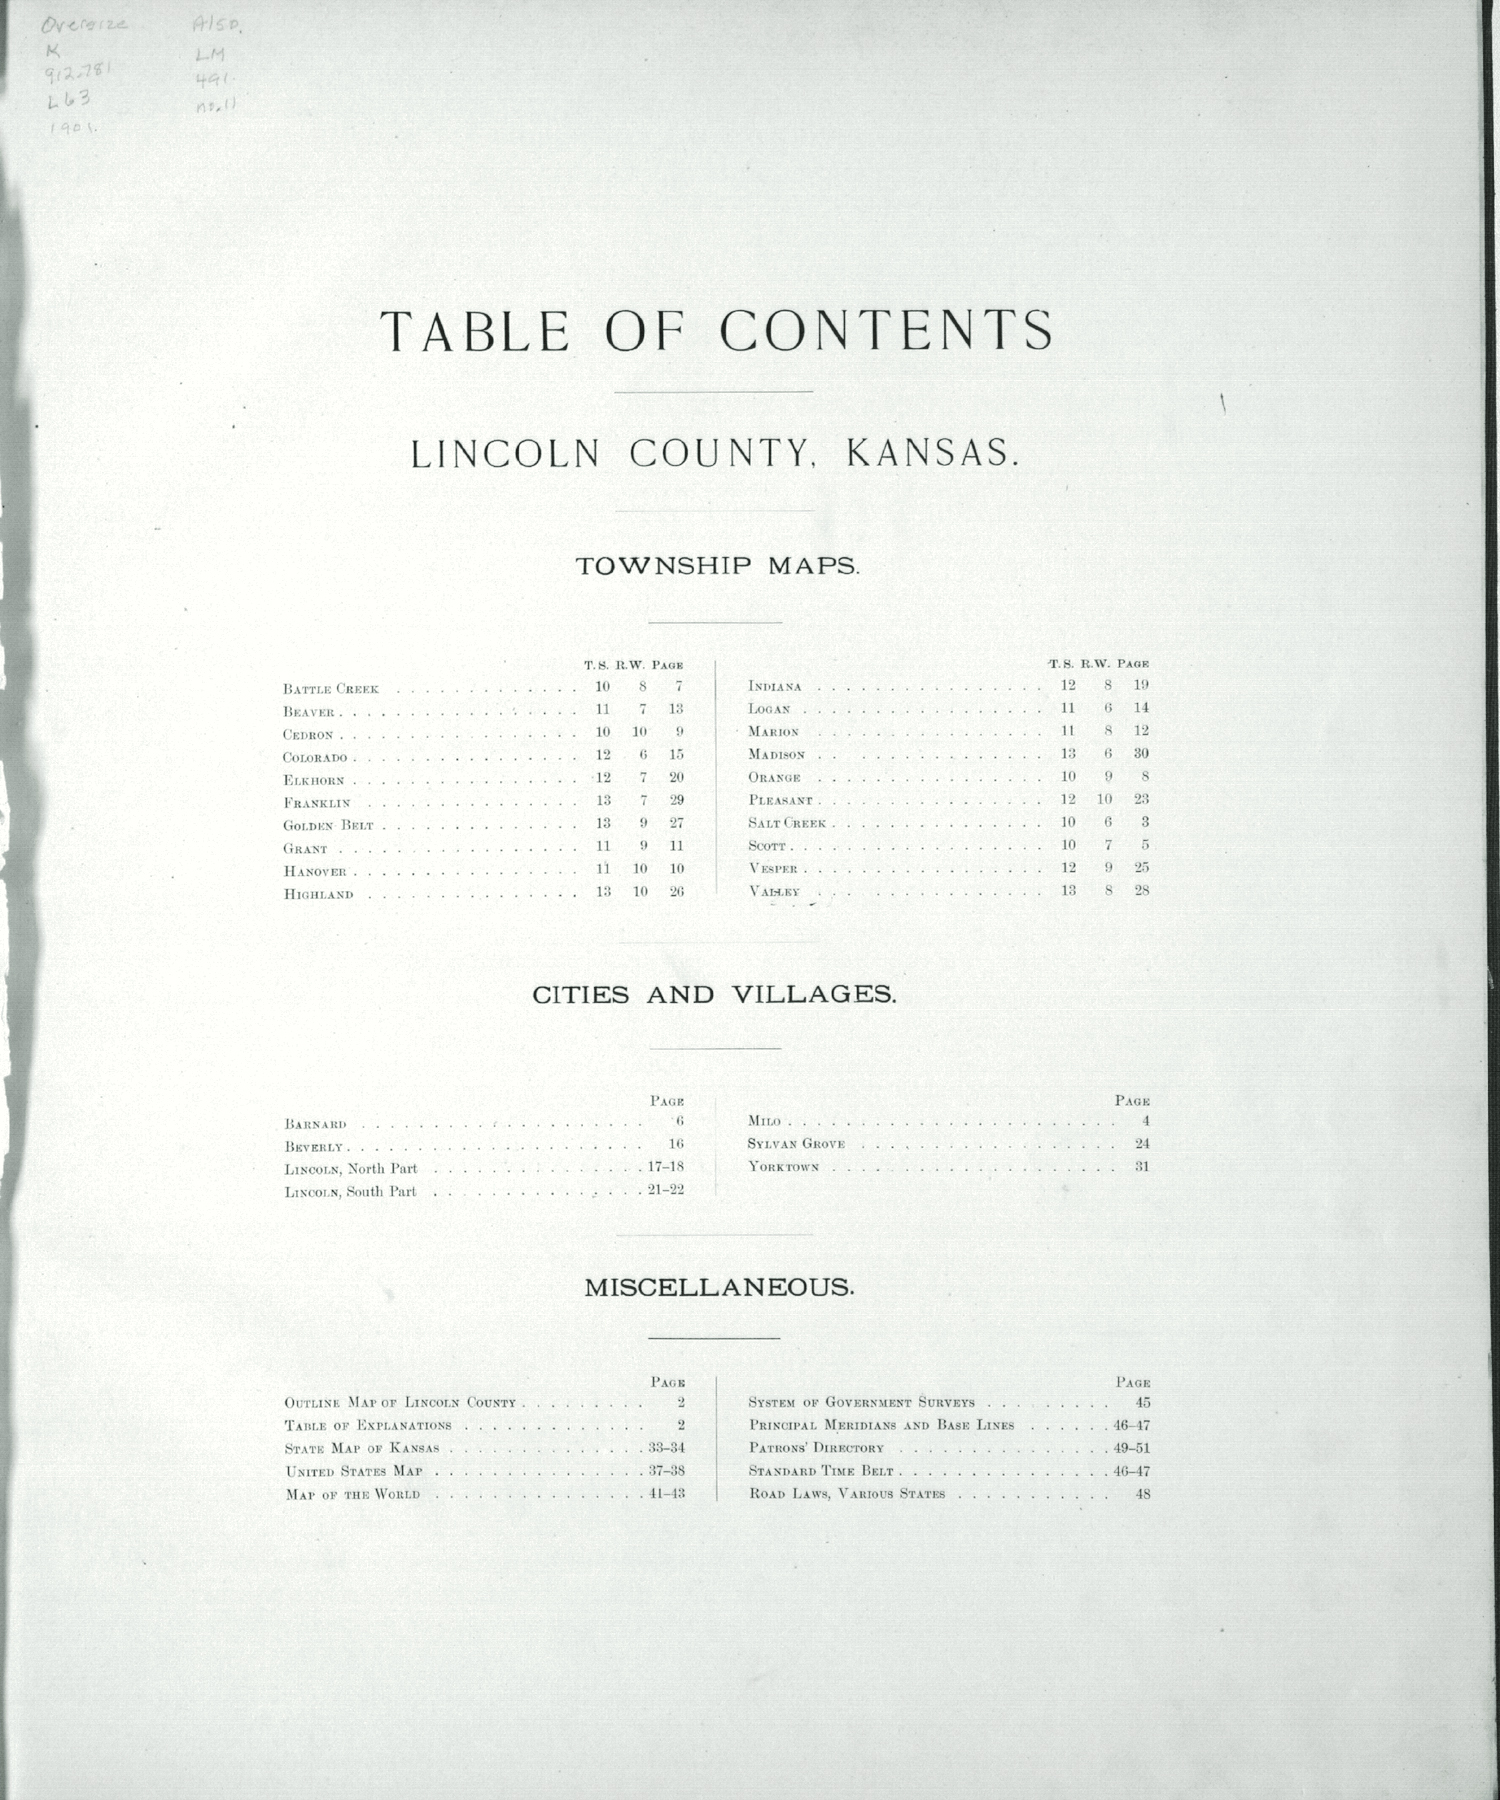 Plat book of Lincoln County, Kansas - Table of Contents